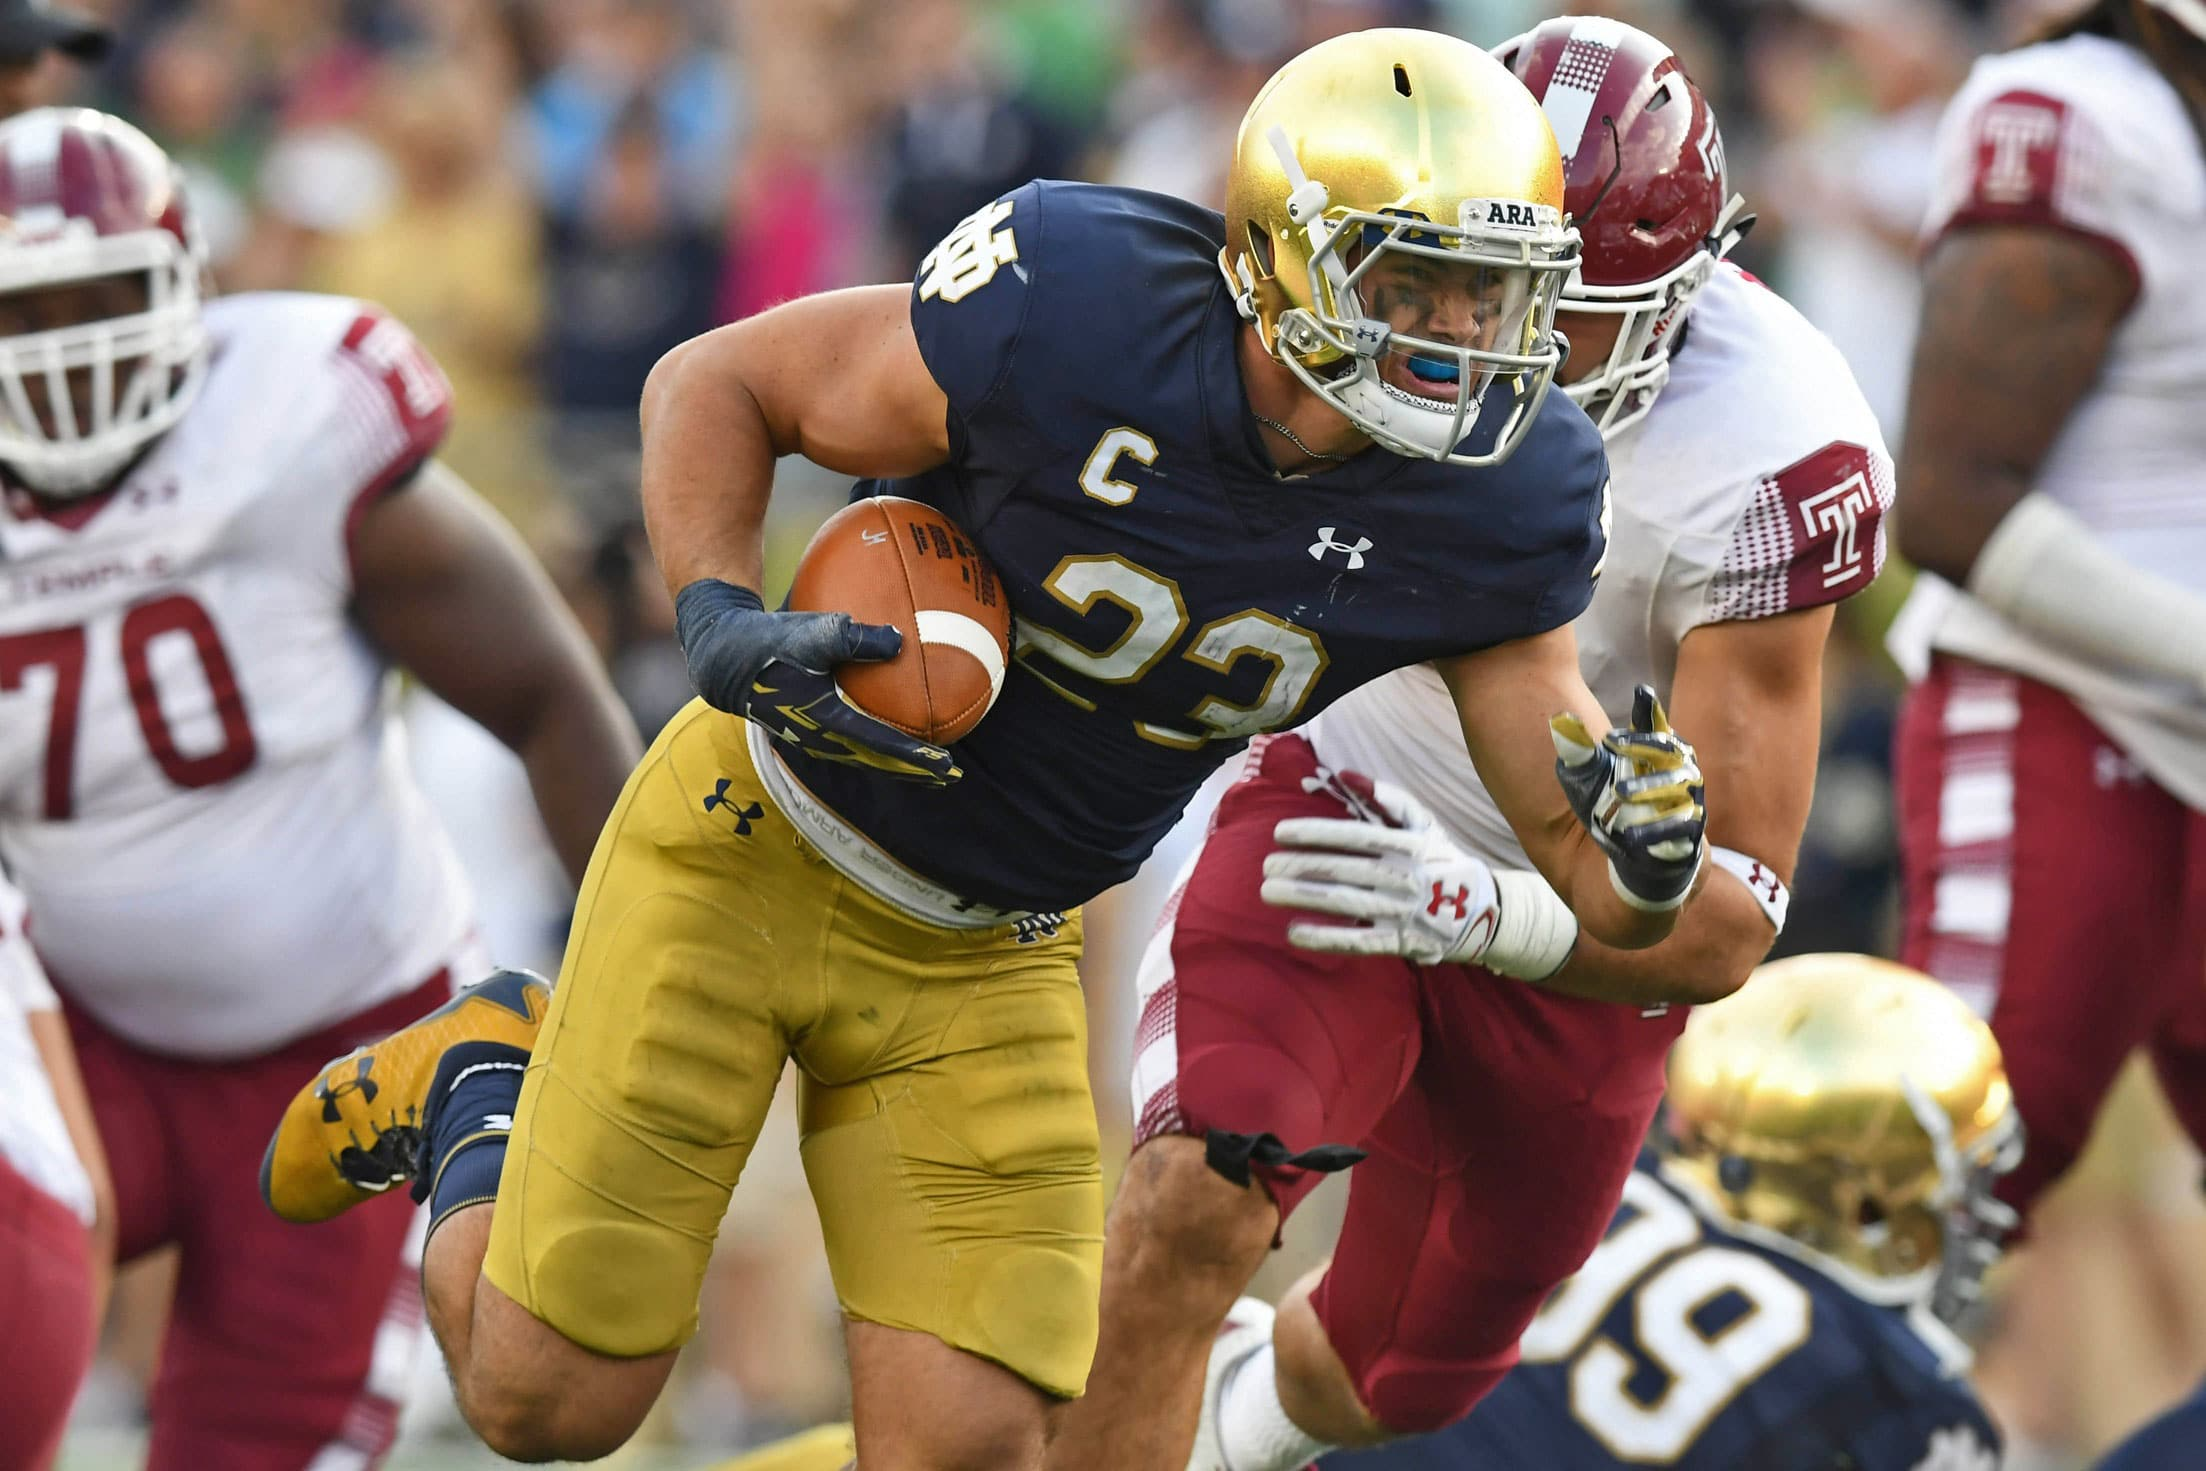 Drue-tranquill-5th-year-notre-dame